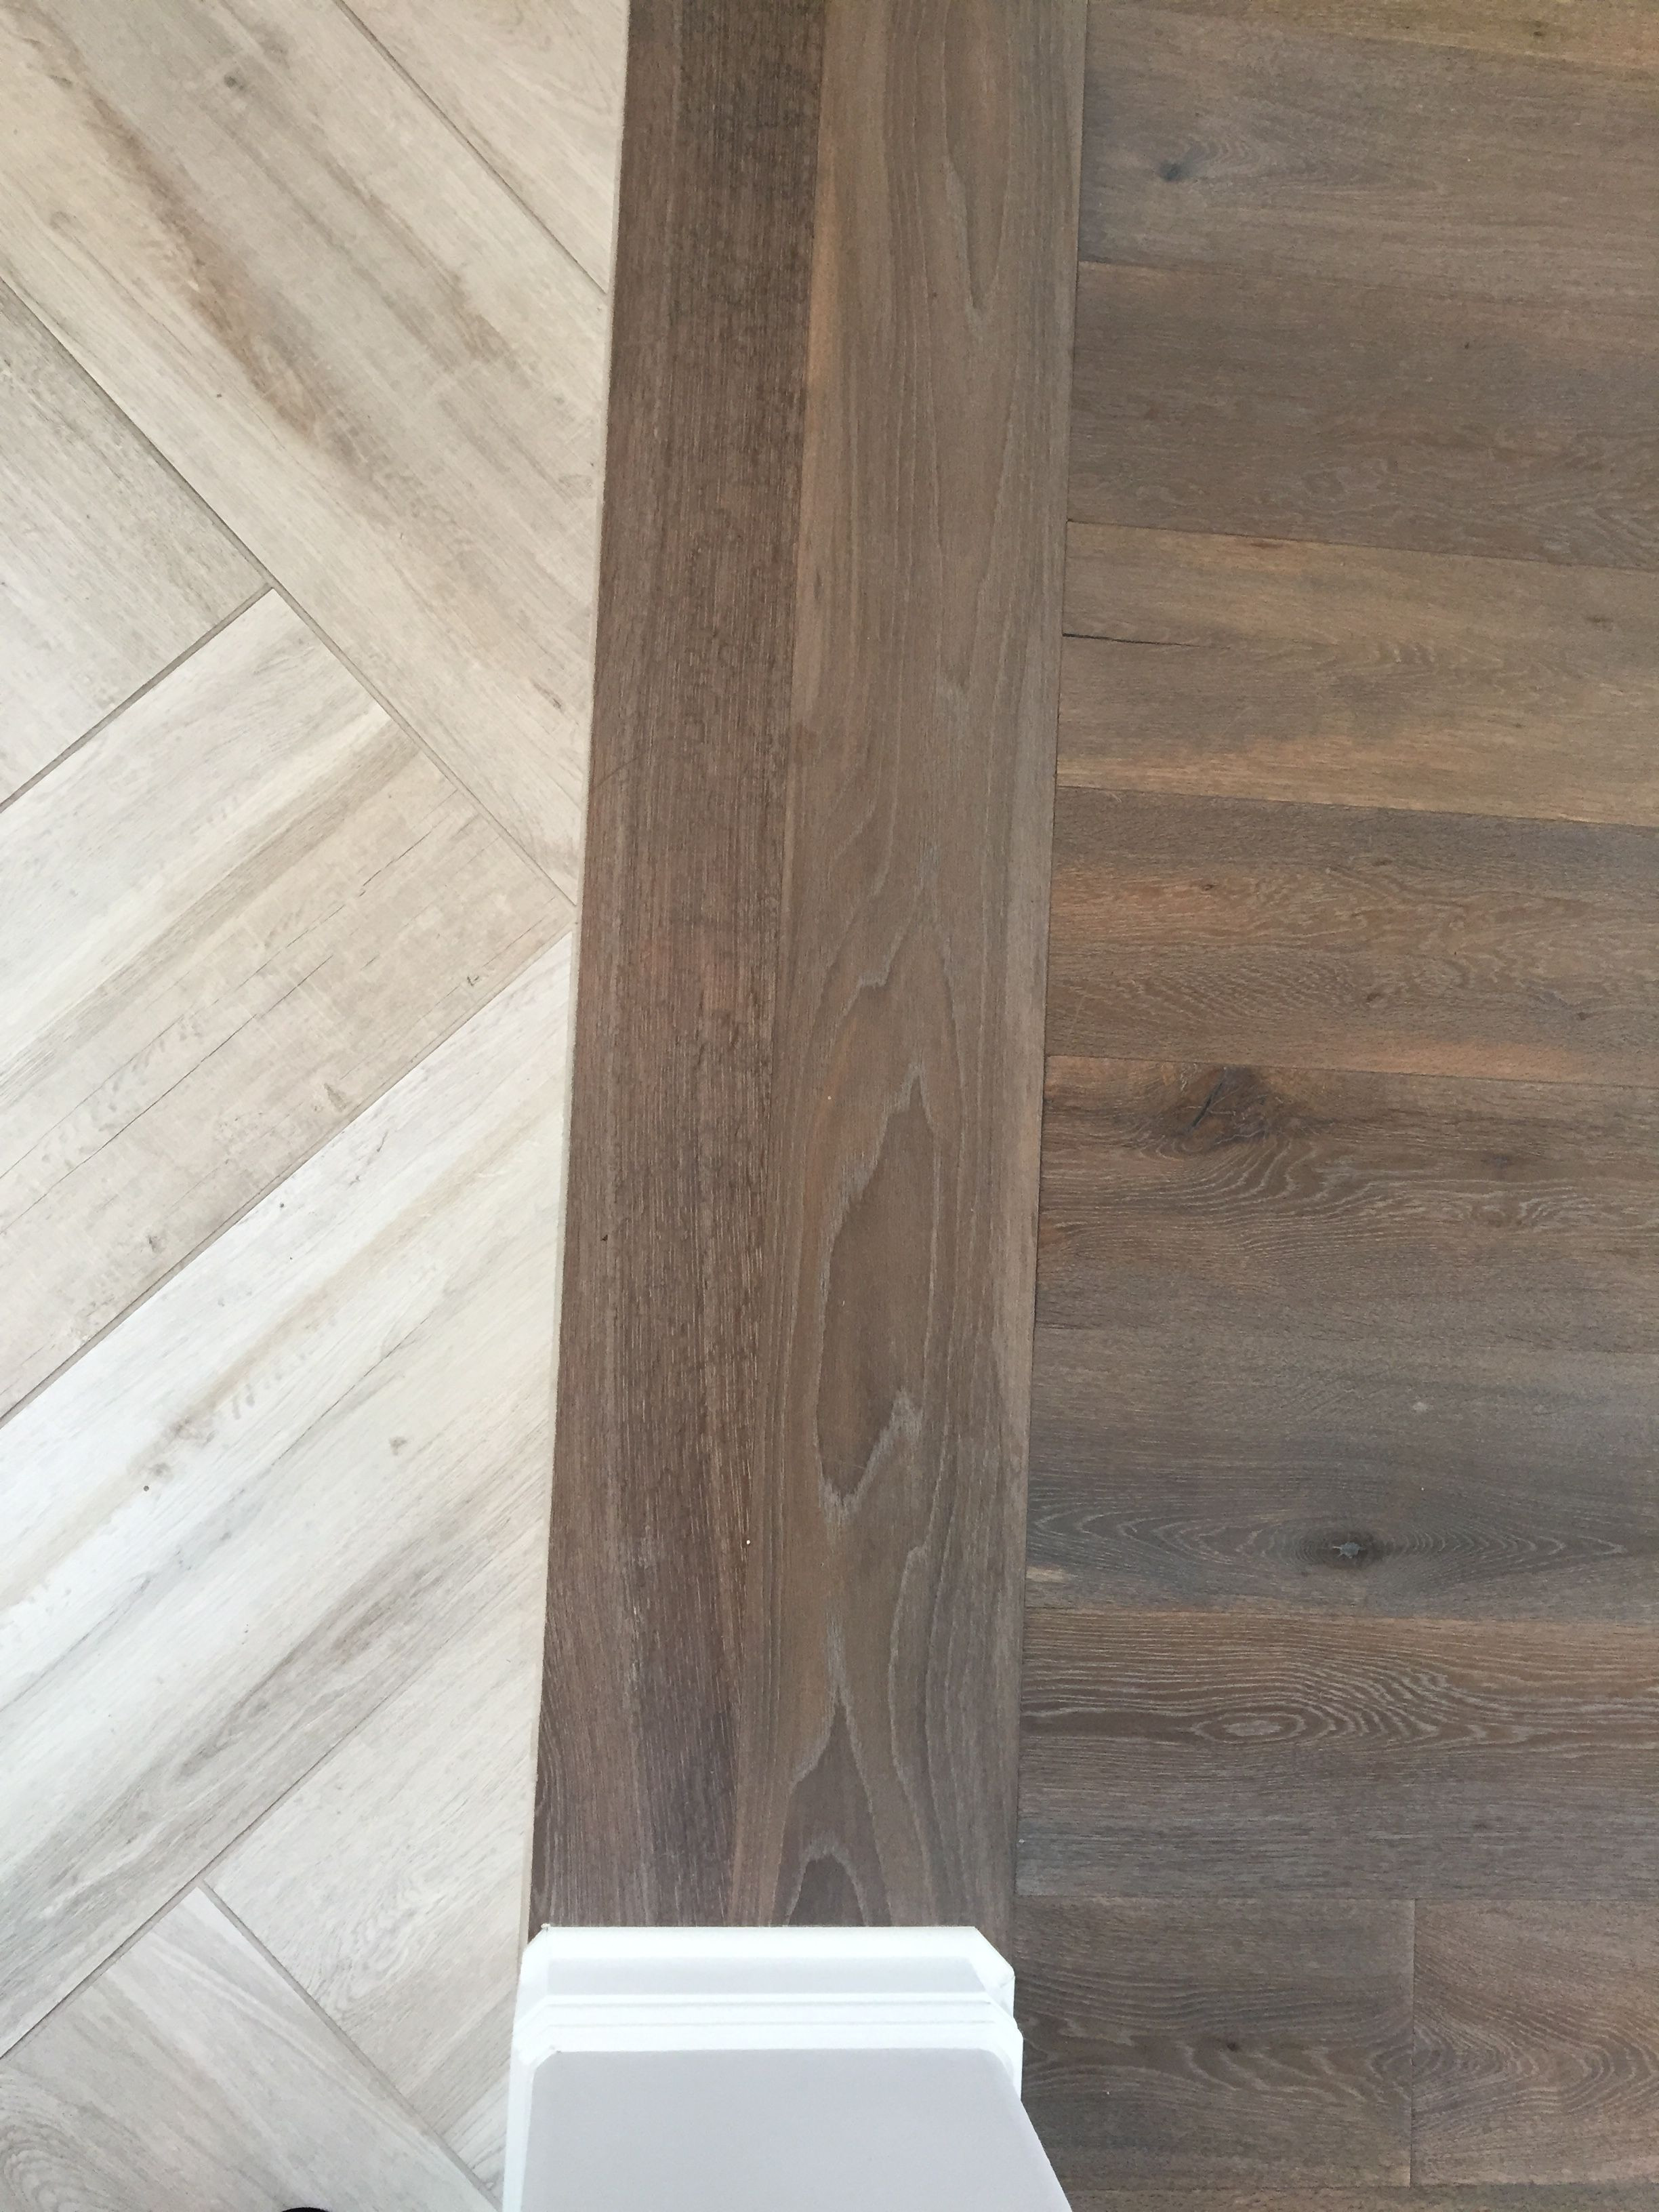 hardwood floor refinishing houston tx of floor tile floor transition laminate to herringbone tile pattern with regard to floor tile floor transition laminate to herringbone tile pattern